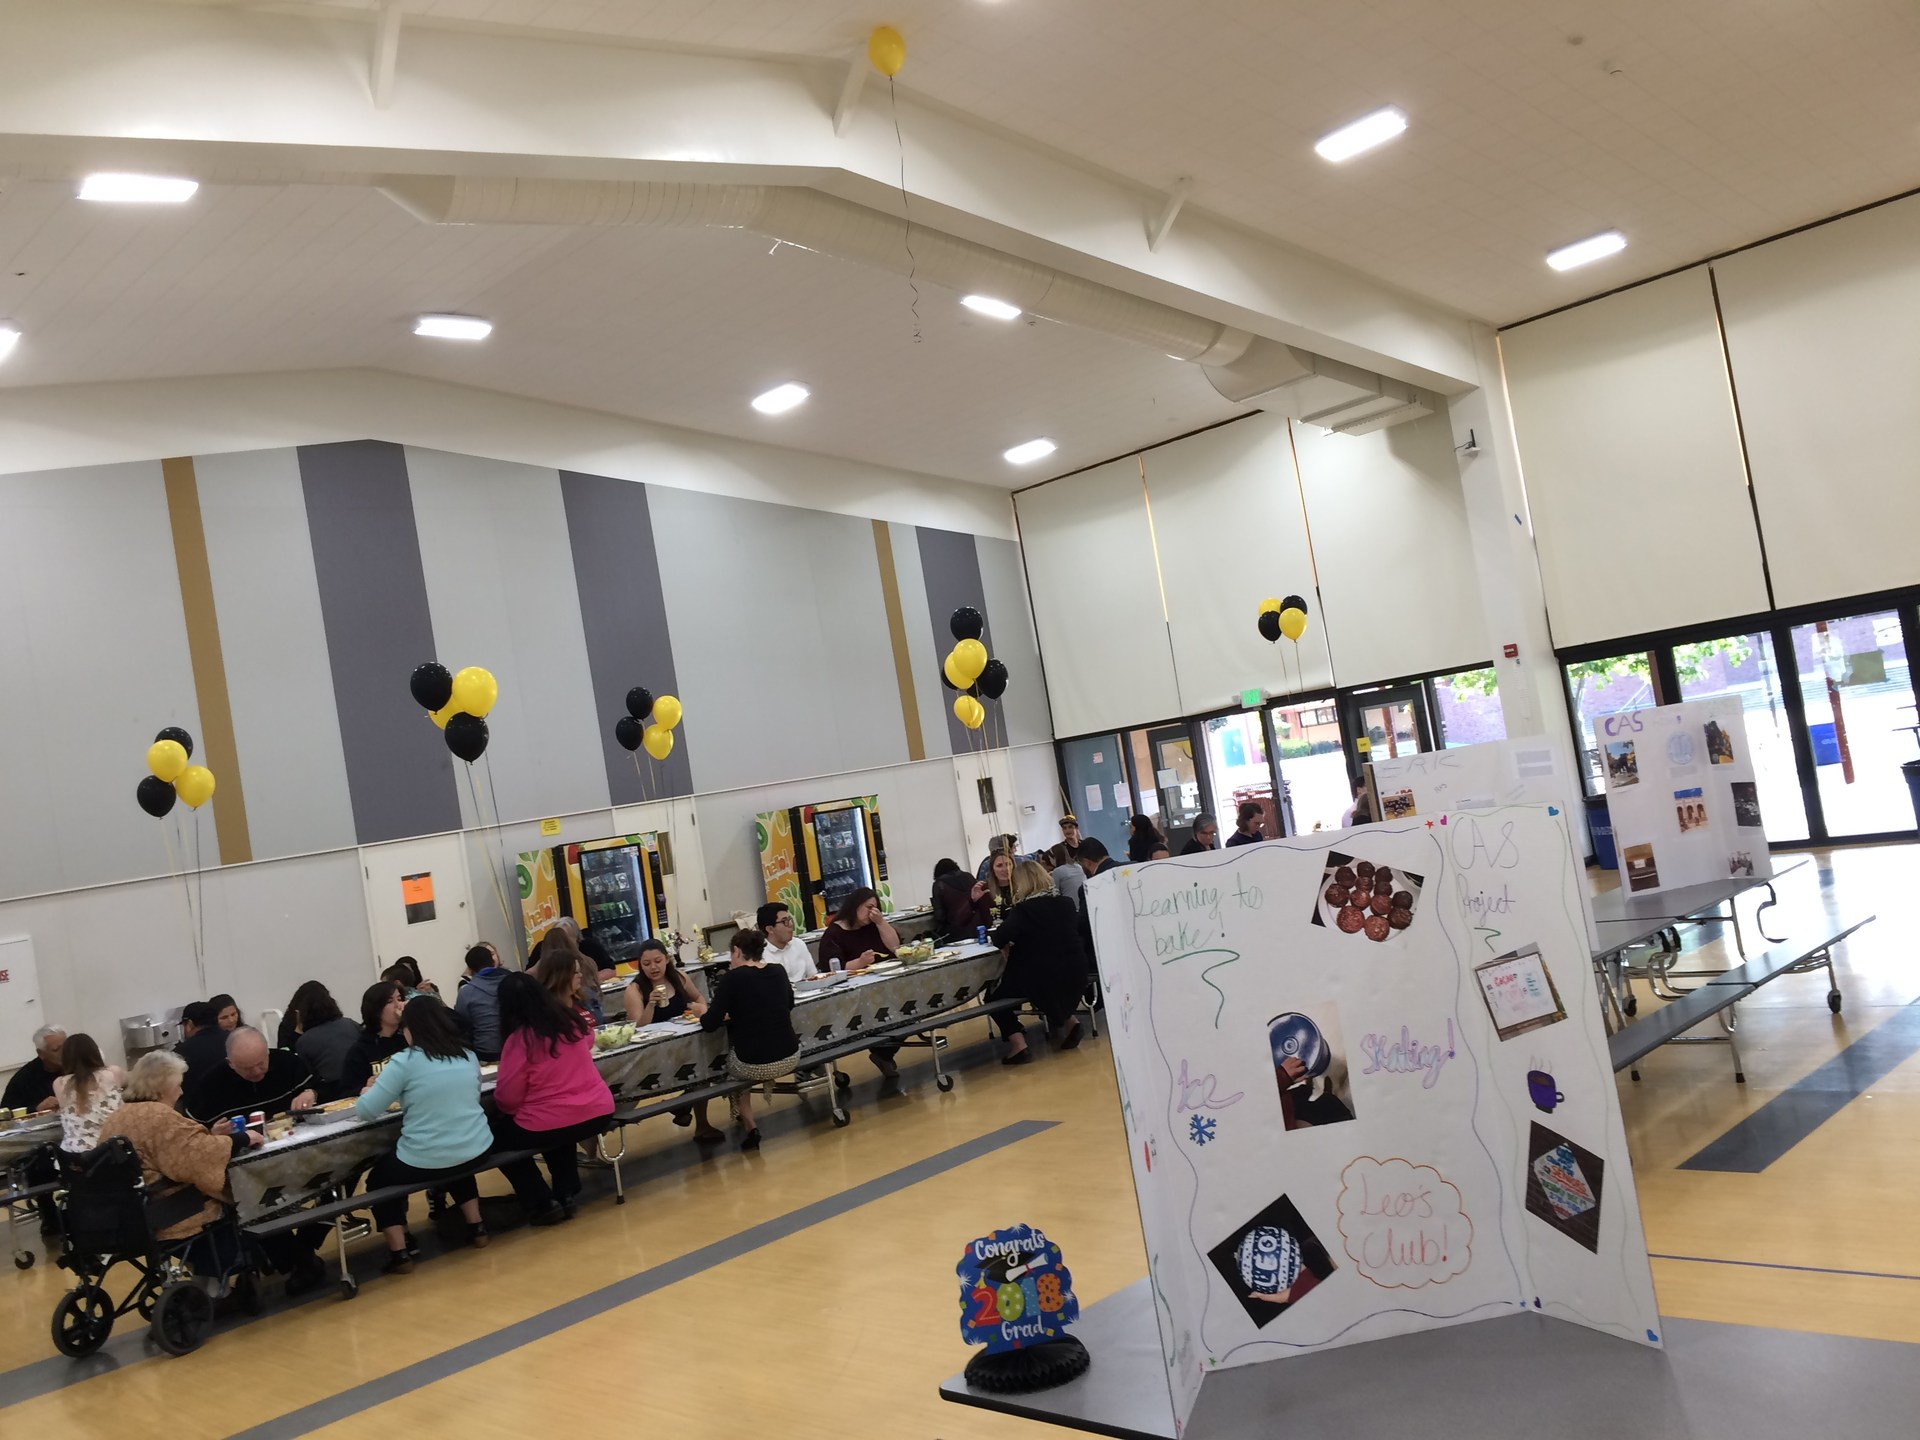 Image of 2018 IB Diploma Candidate's presentation board at CAS Celebration Event